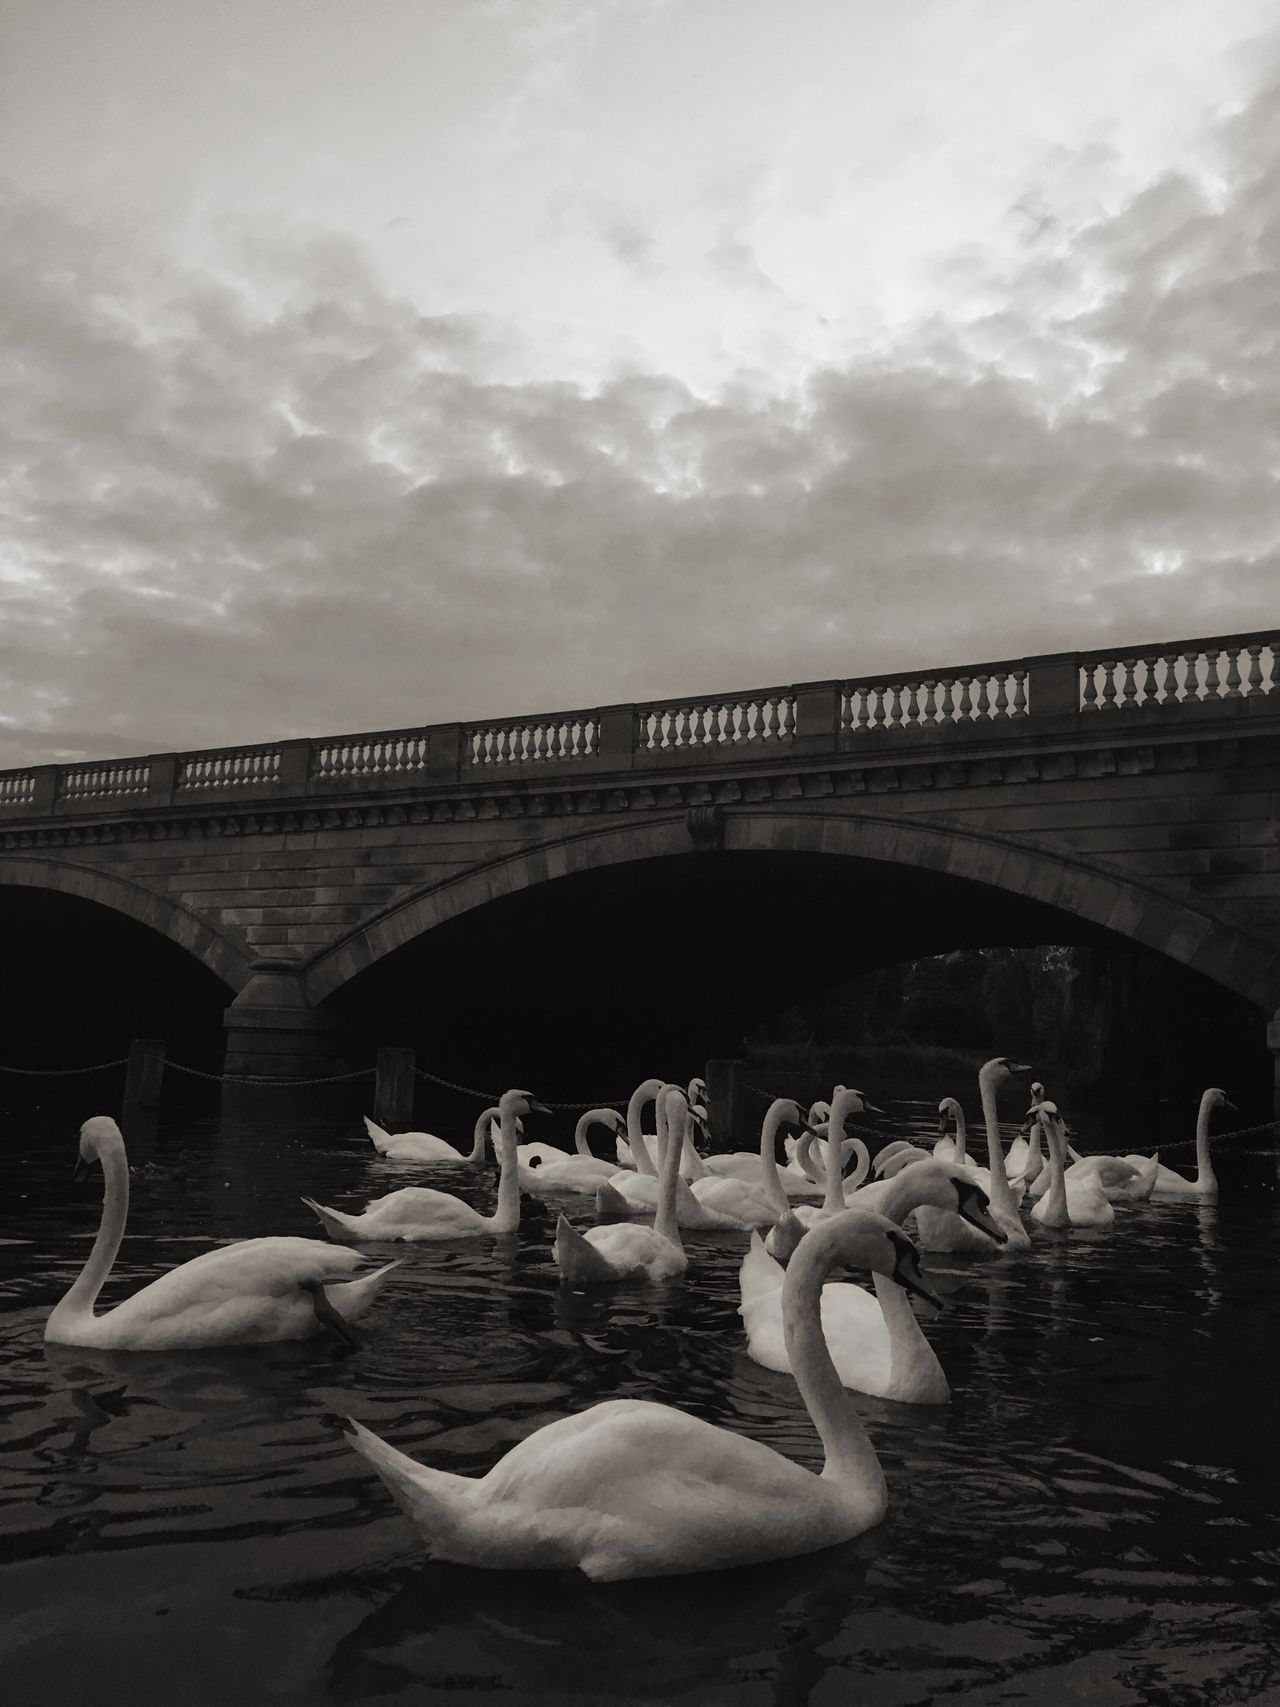 Swantastic Bridge Over Water Swans On The Lake Blackandwhite Golden Hour Sunset Artistic Water_collection EyeEm Best Shots Fine Art Photography Showcase July Picturesque The Week Of Eyeem Fine Art Nature Photography Beautiful Day